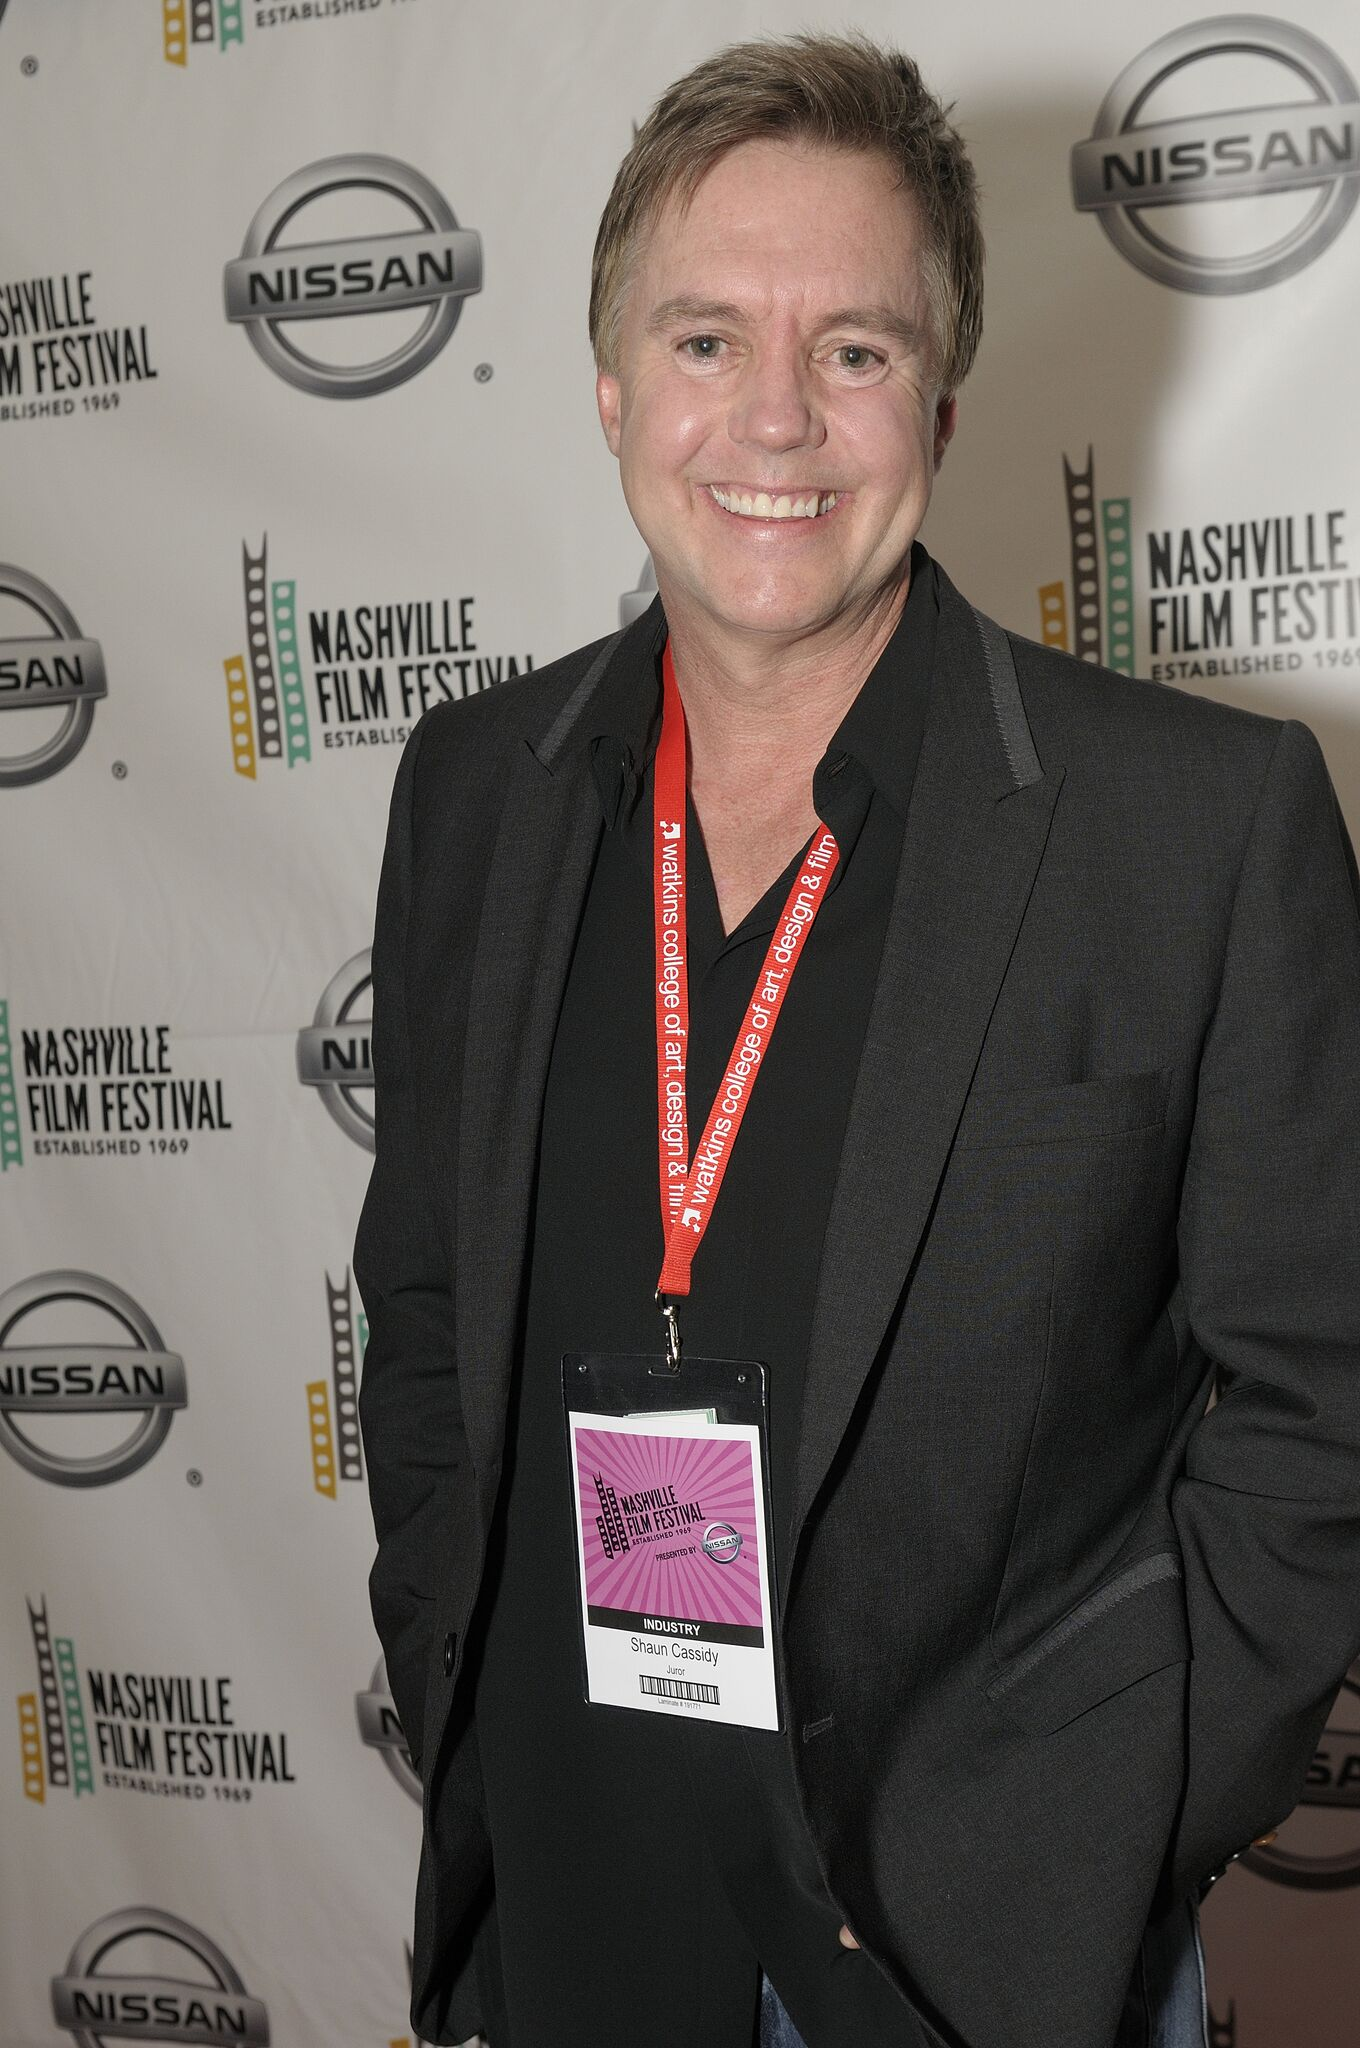 Shaun Cassidy attends the opening night of the 2011 Nashville Film Festival at Green Hills  | Getty Images / Global Images Ukraine